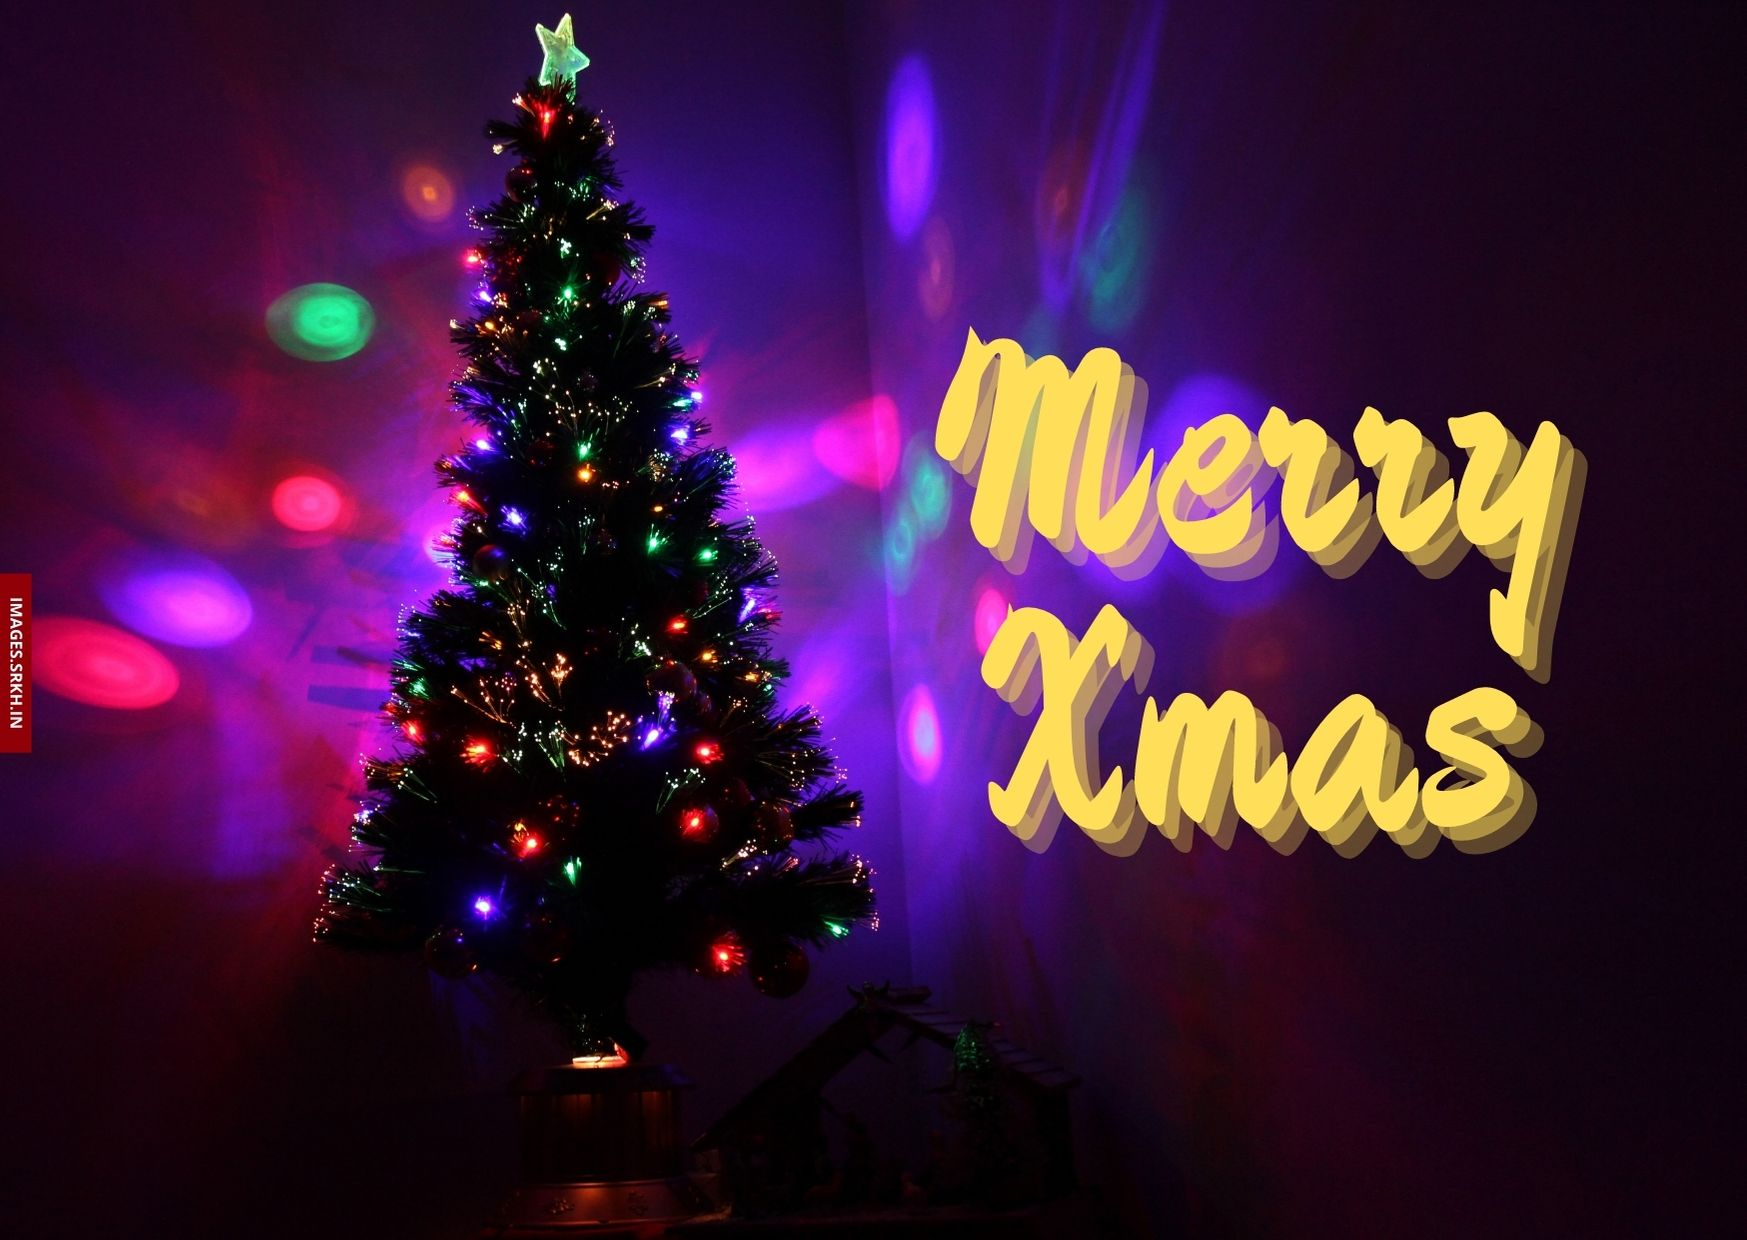 Xmas Images 2020 full HD free download.